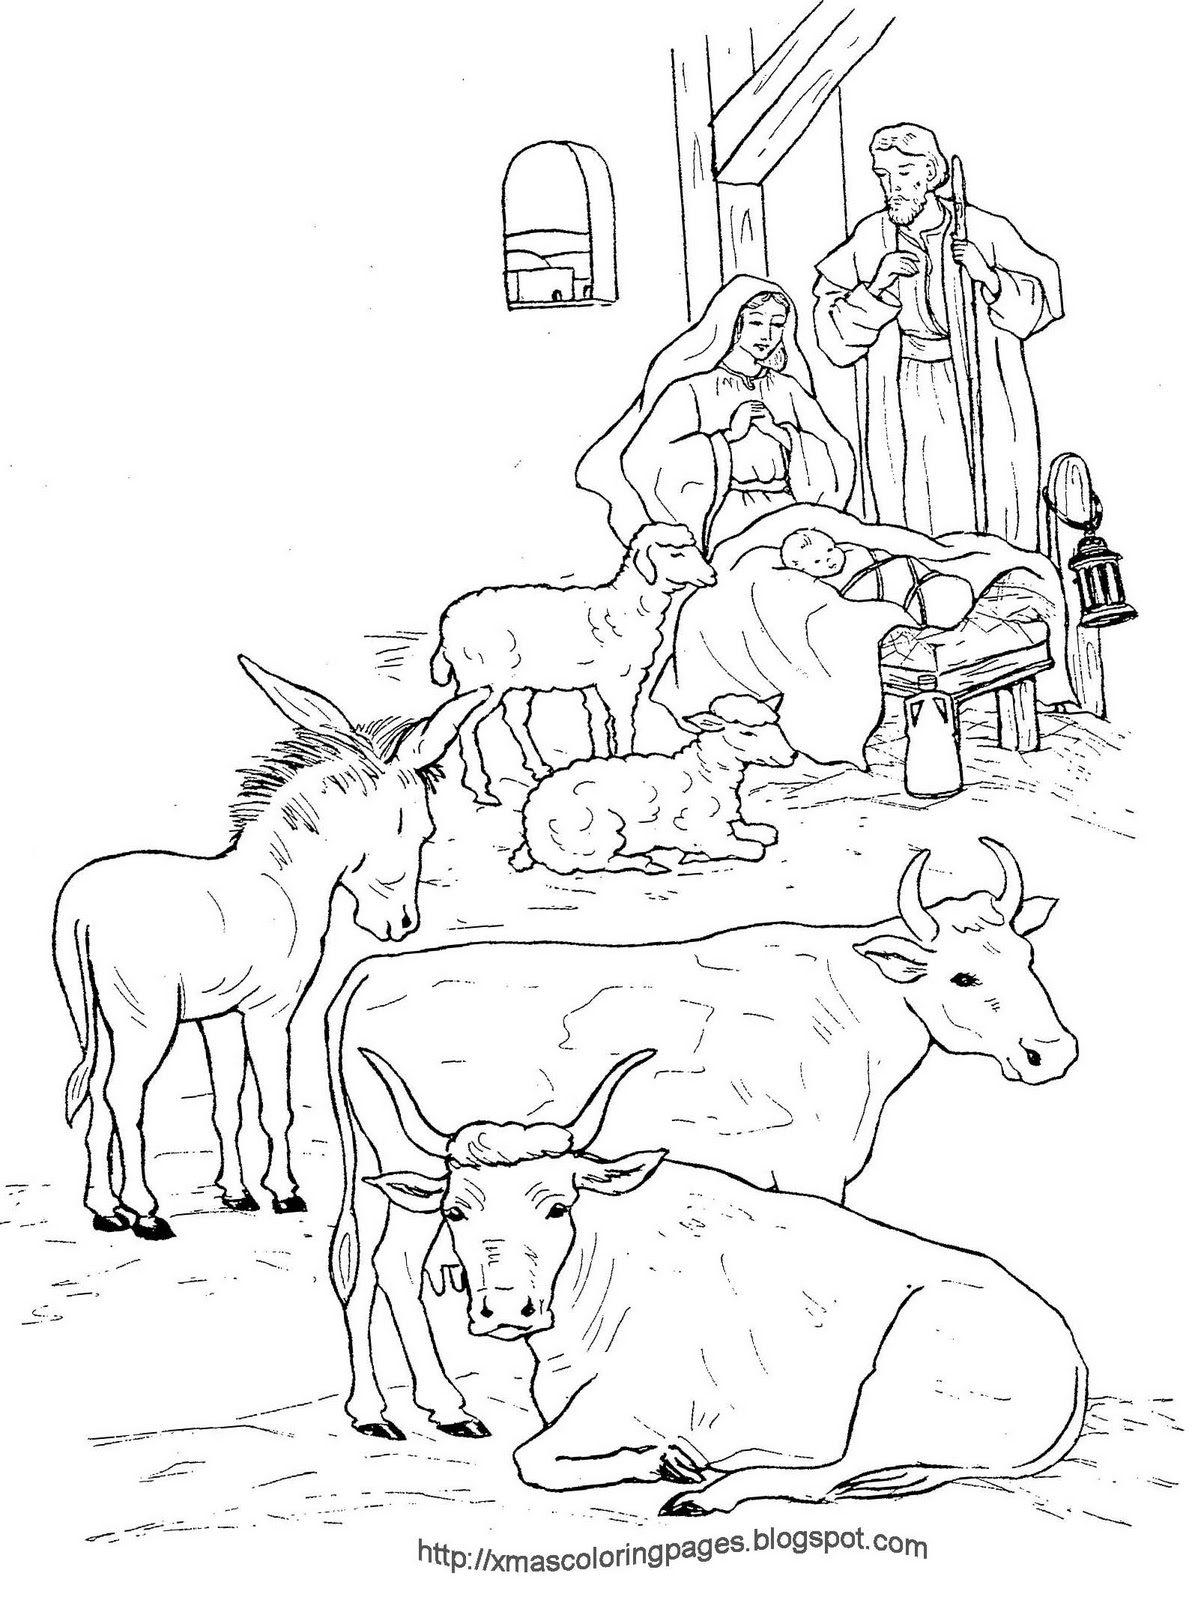 baby jesus in manger coloring page baby jesus coloring pages best coloring pages for kids in manger baby page jesus coloring